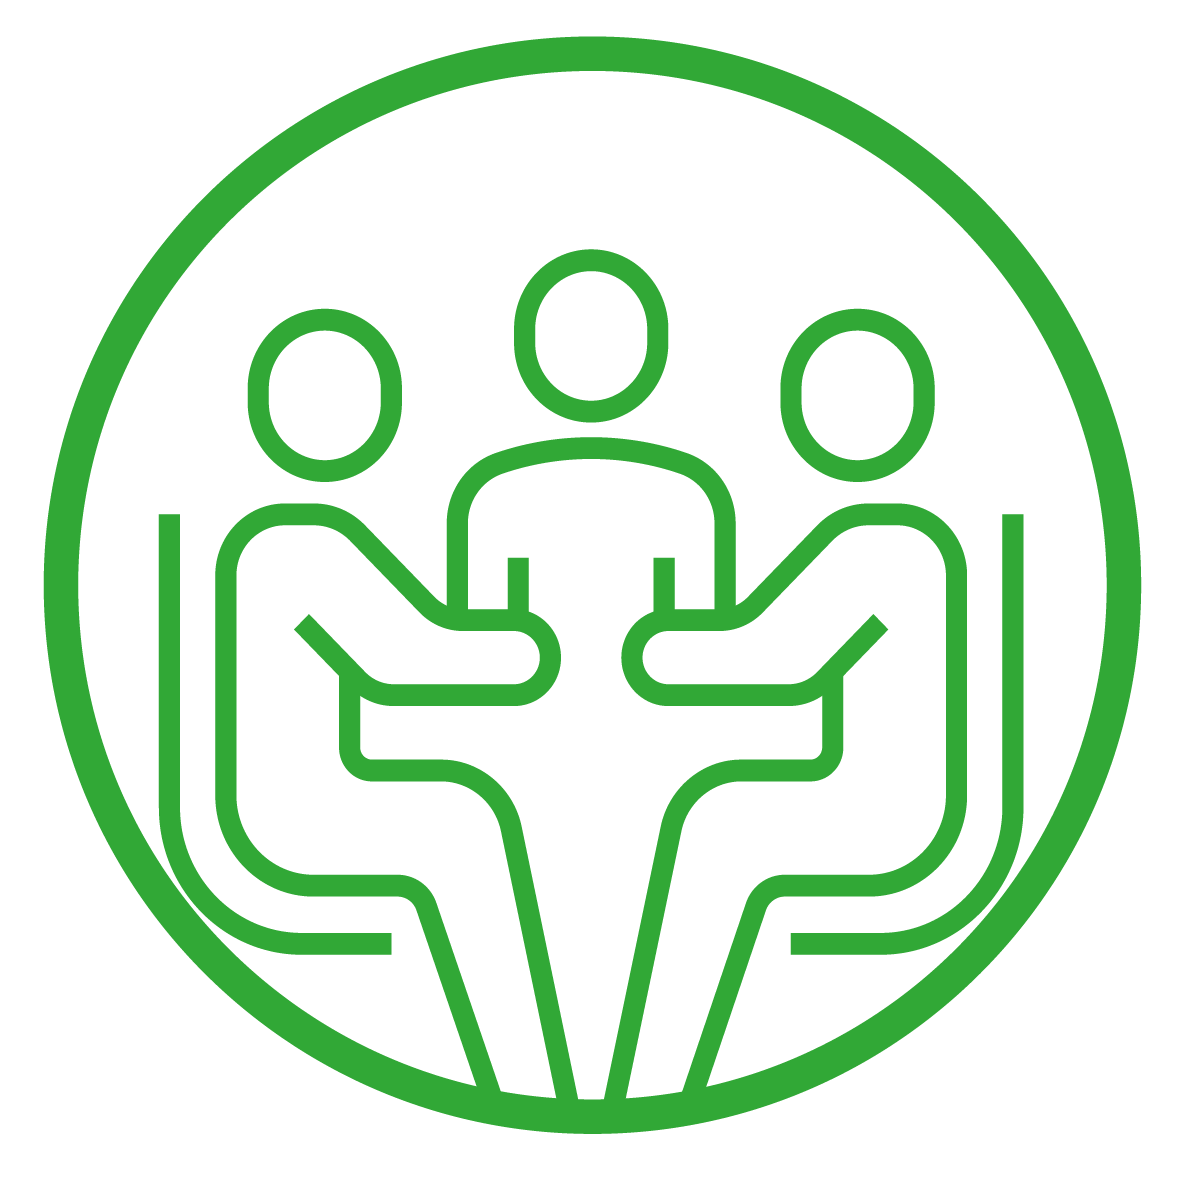 Quality Assurance green icon